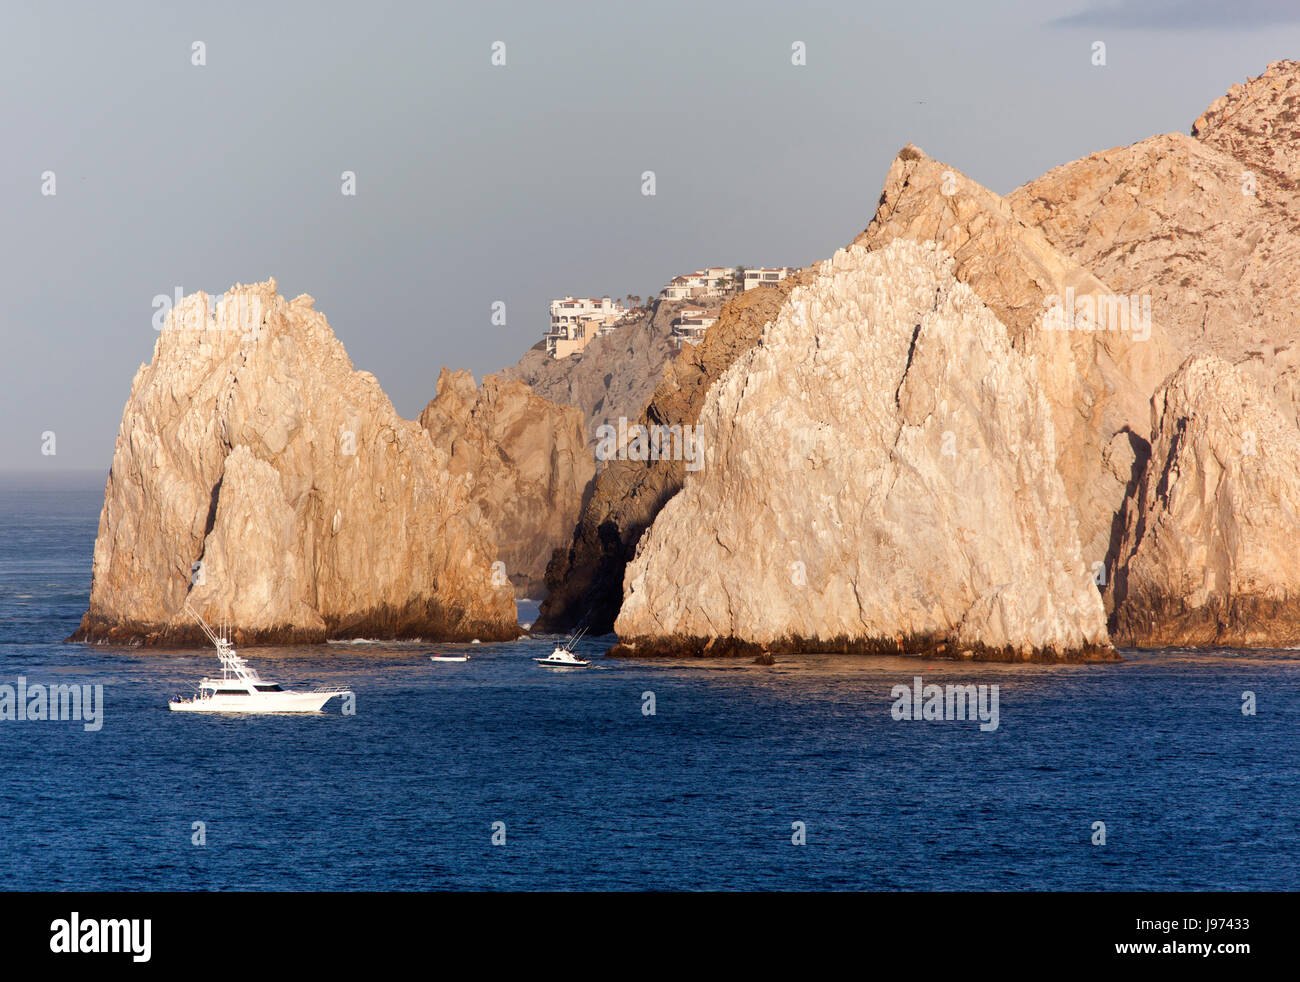 The famous rocks of Cabo San Lucas resort town in a morning light (Mexico). - Stock Image